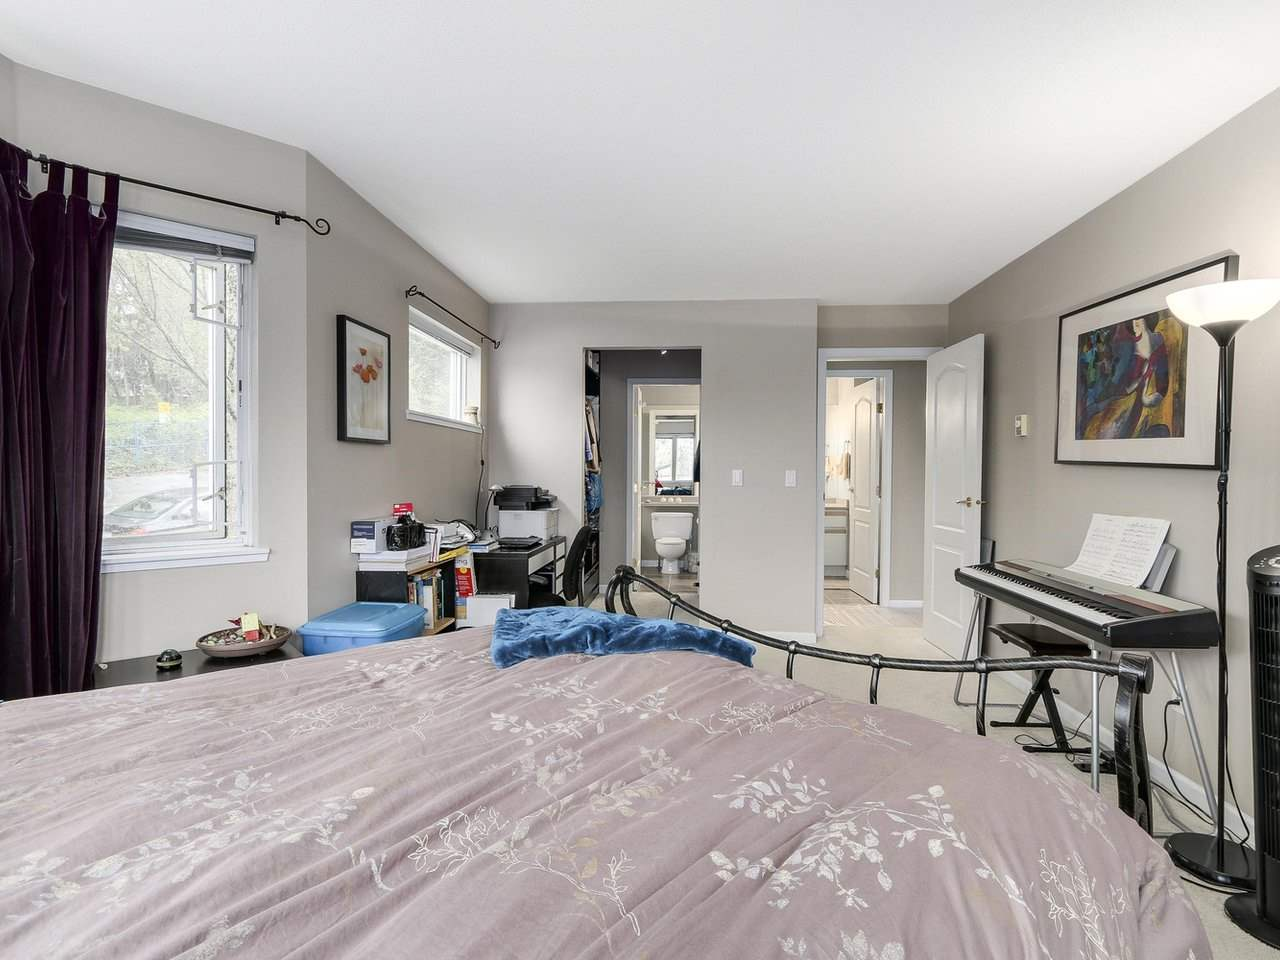 Photo 12: 127 1201 BRUNETTE Avenue in Coquitlam: Maillardville Townhouse for sale : MLS(r) # R2162178